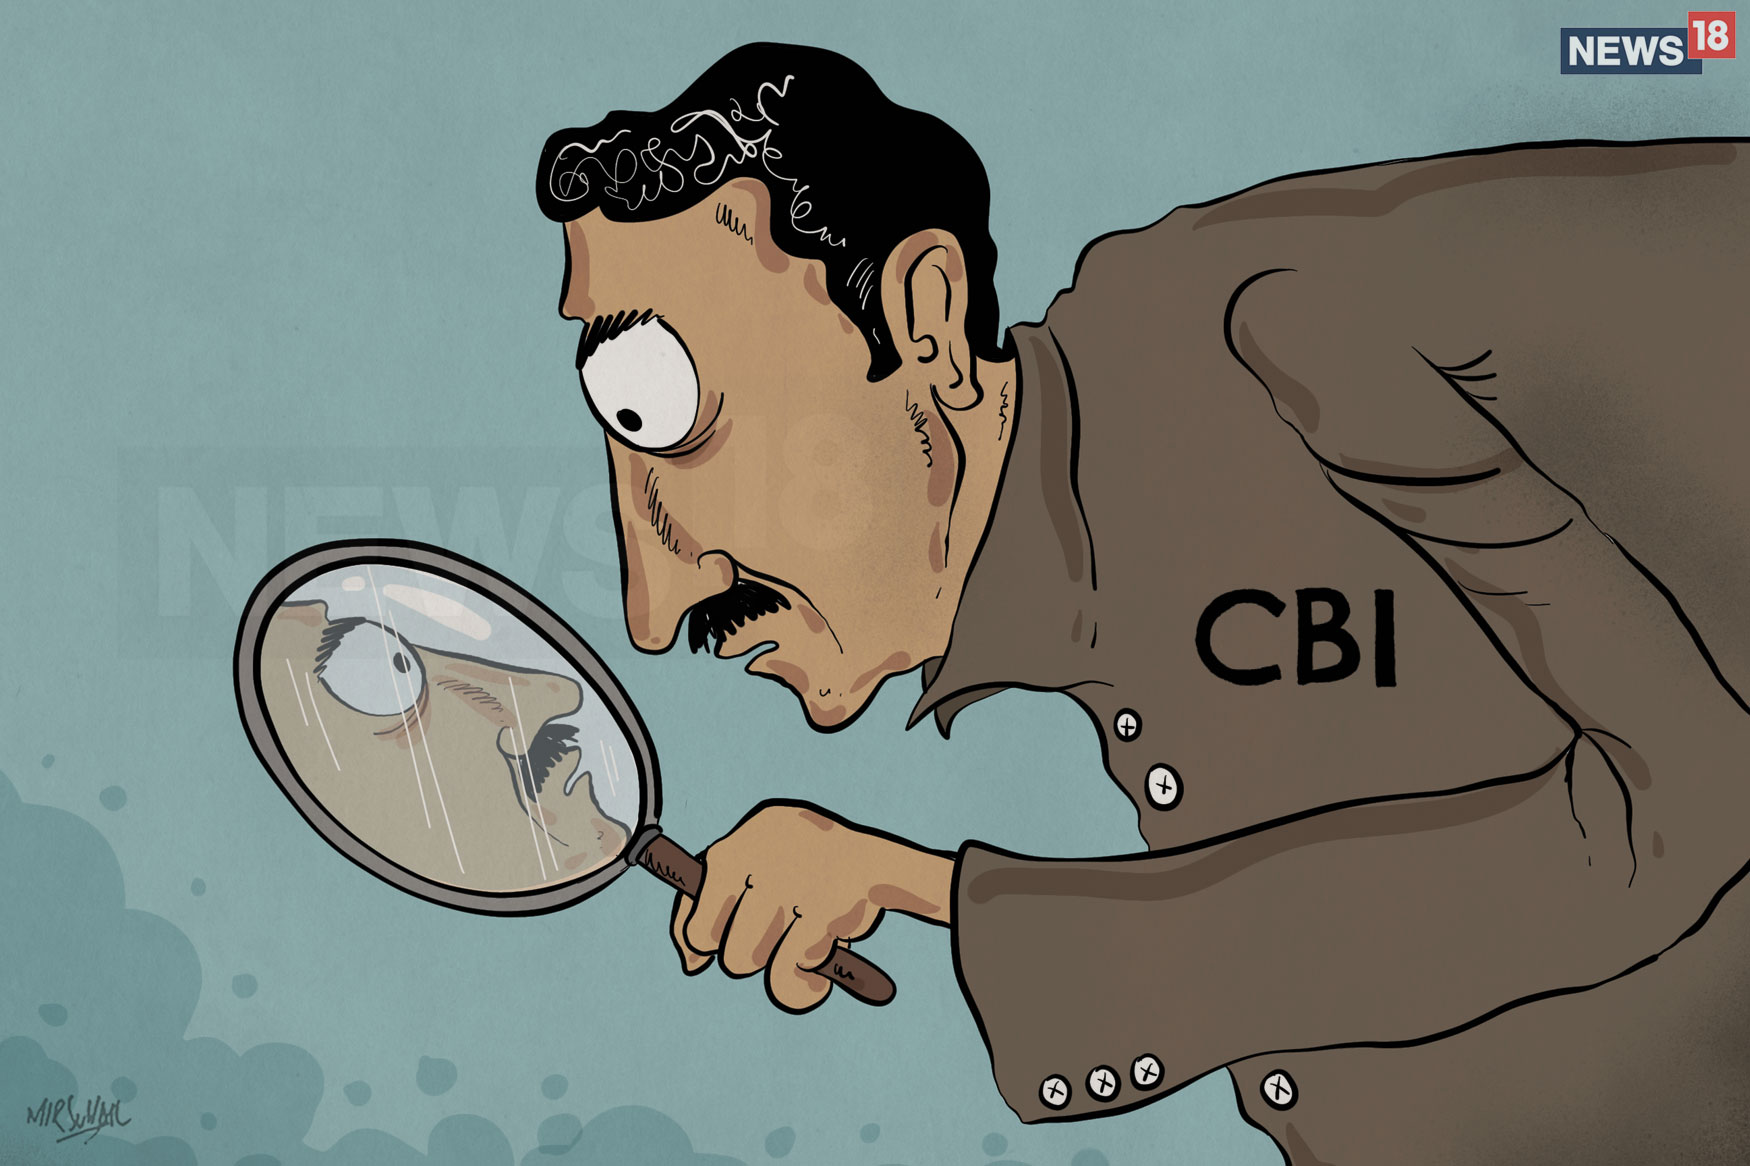 Telugu IPS becomes CBI Director